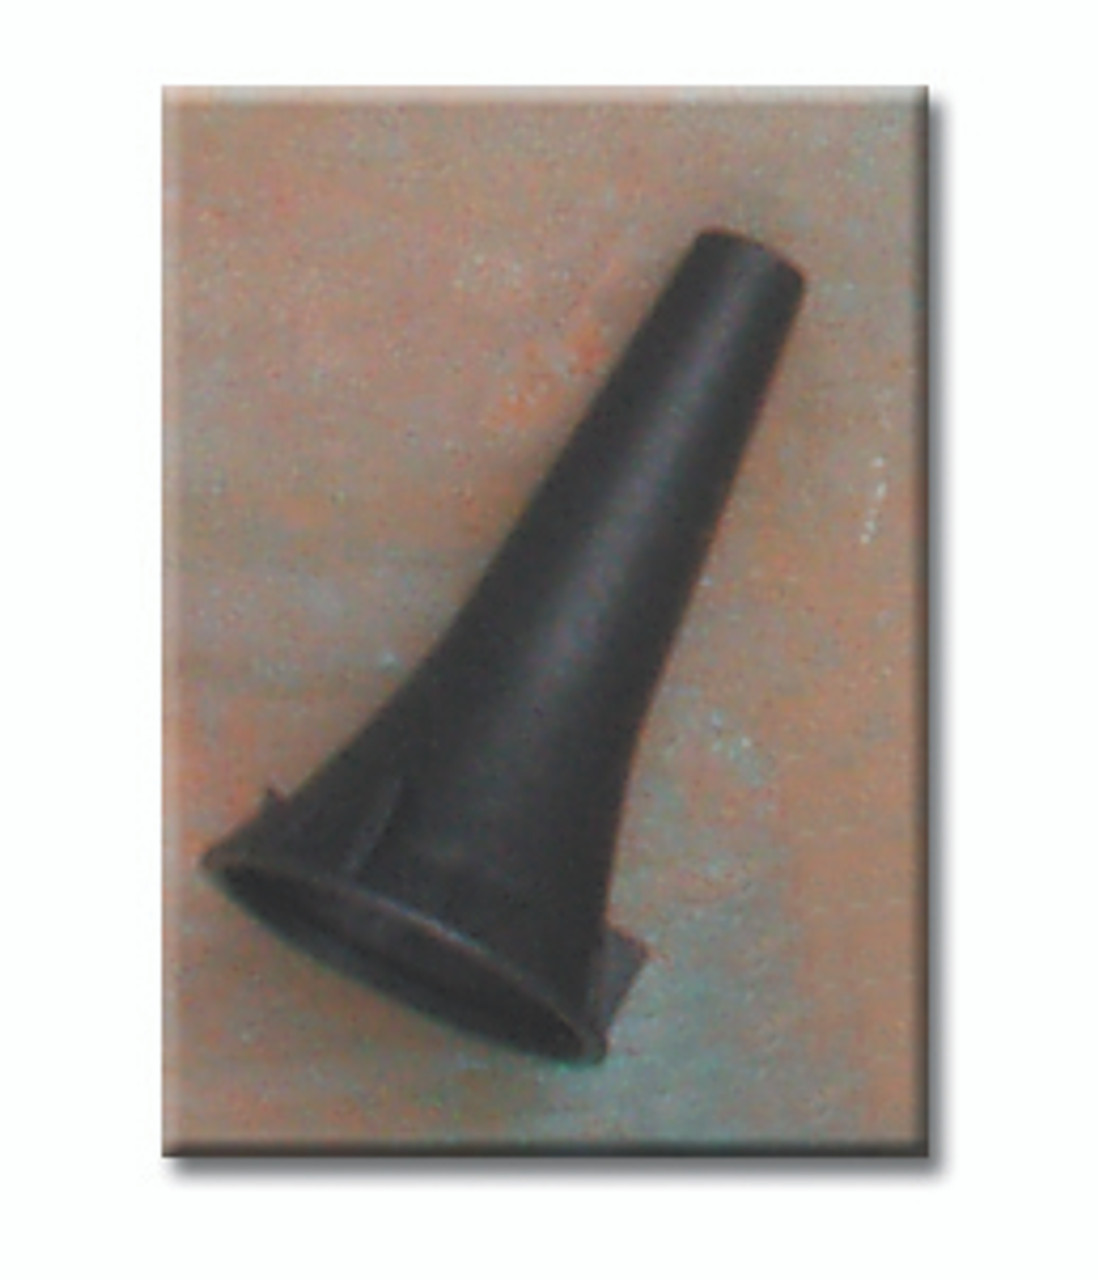 ADC 2.75mm Specula (bag of 850)